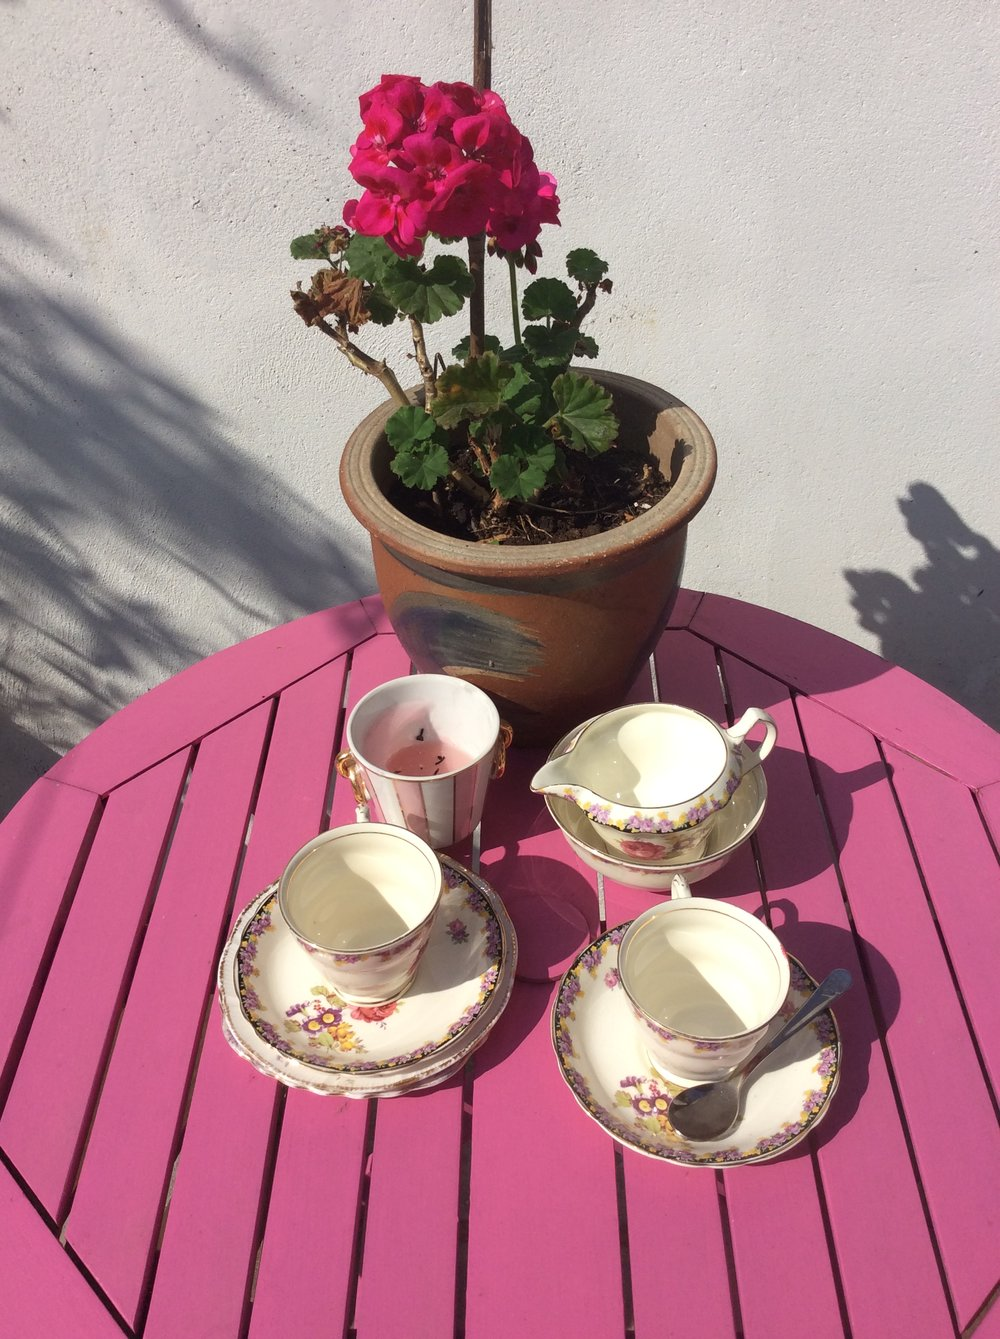 Vintage China Tea Set.